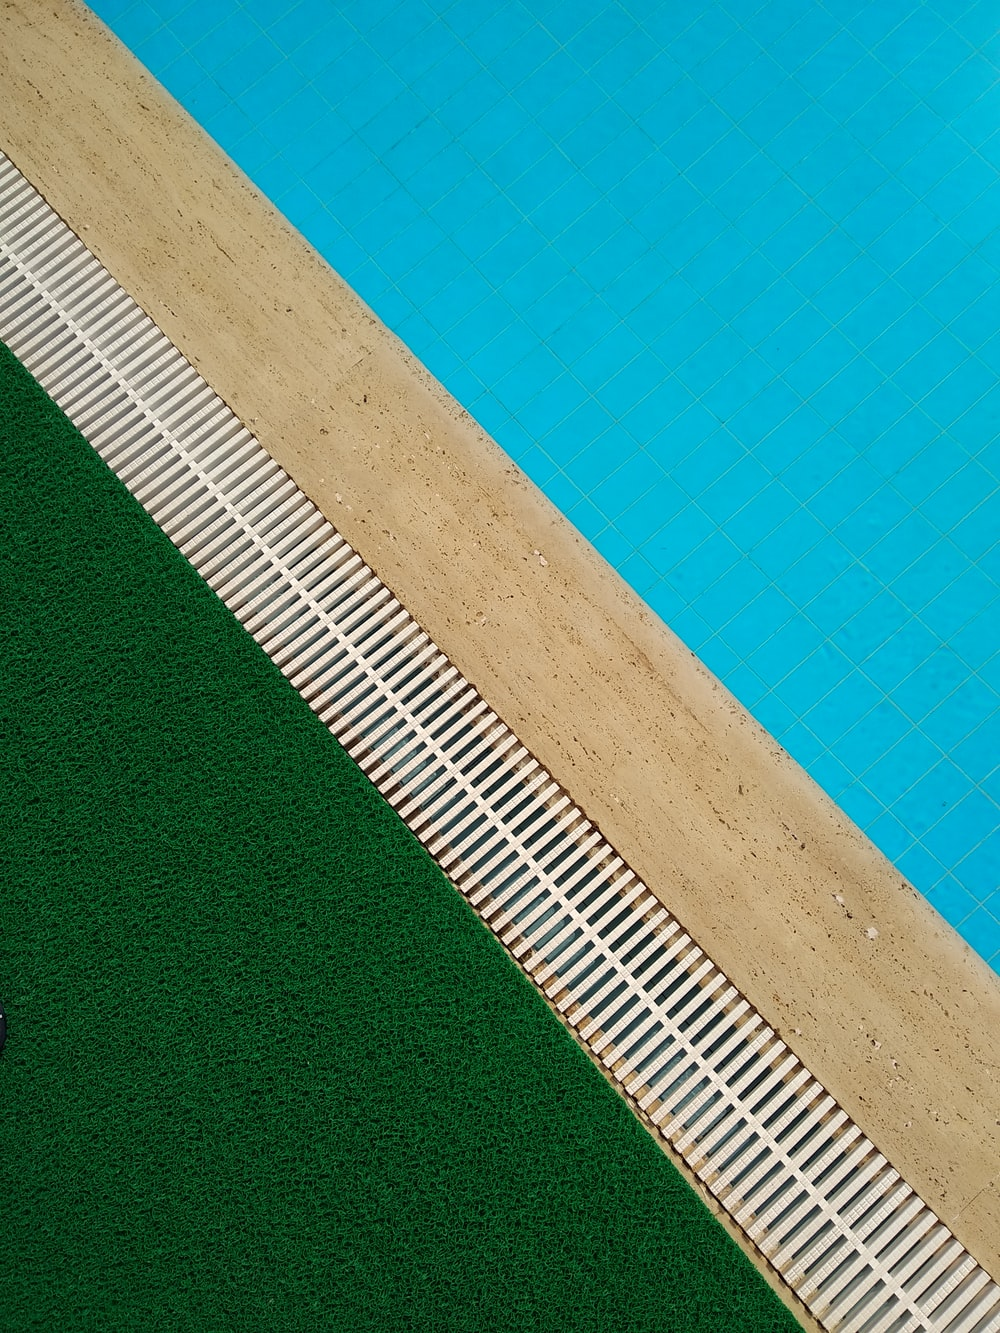 photo of pool and green grass